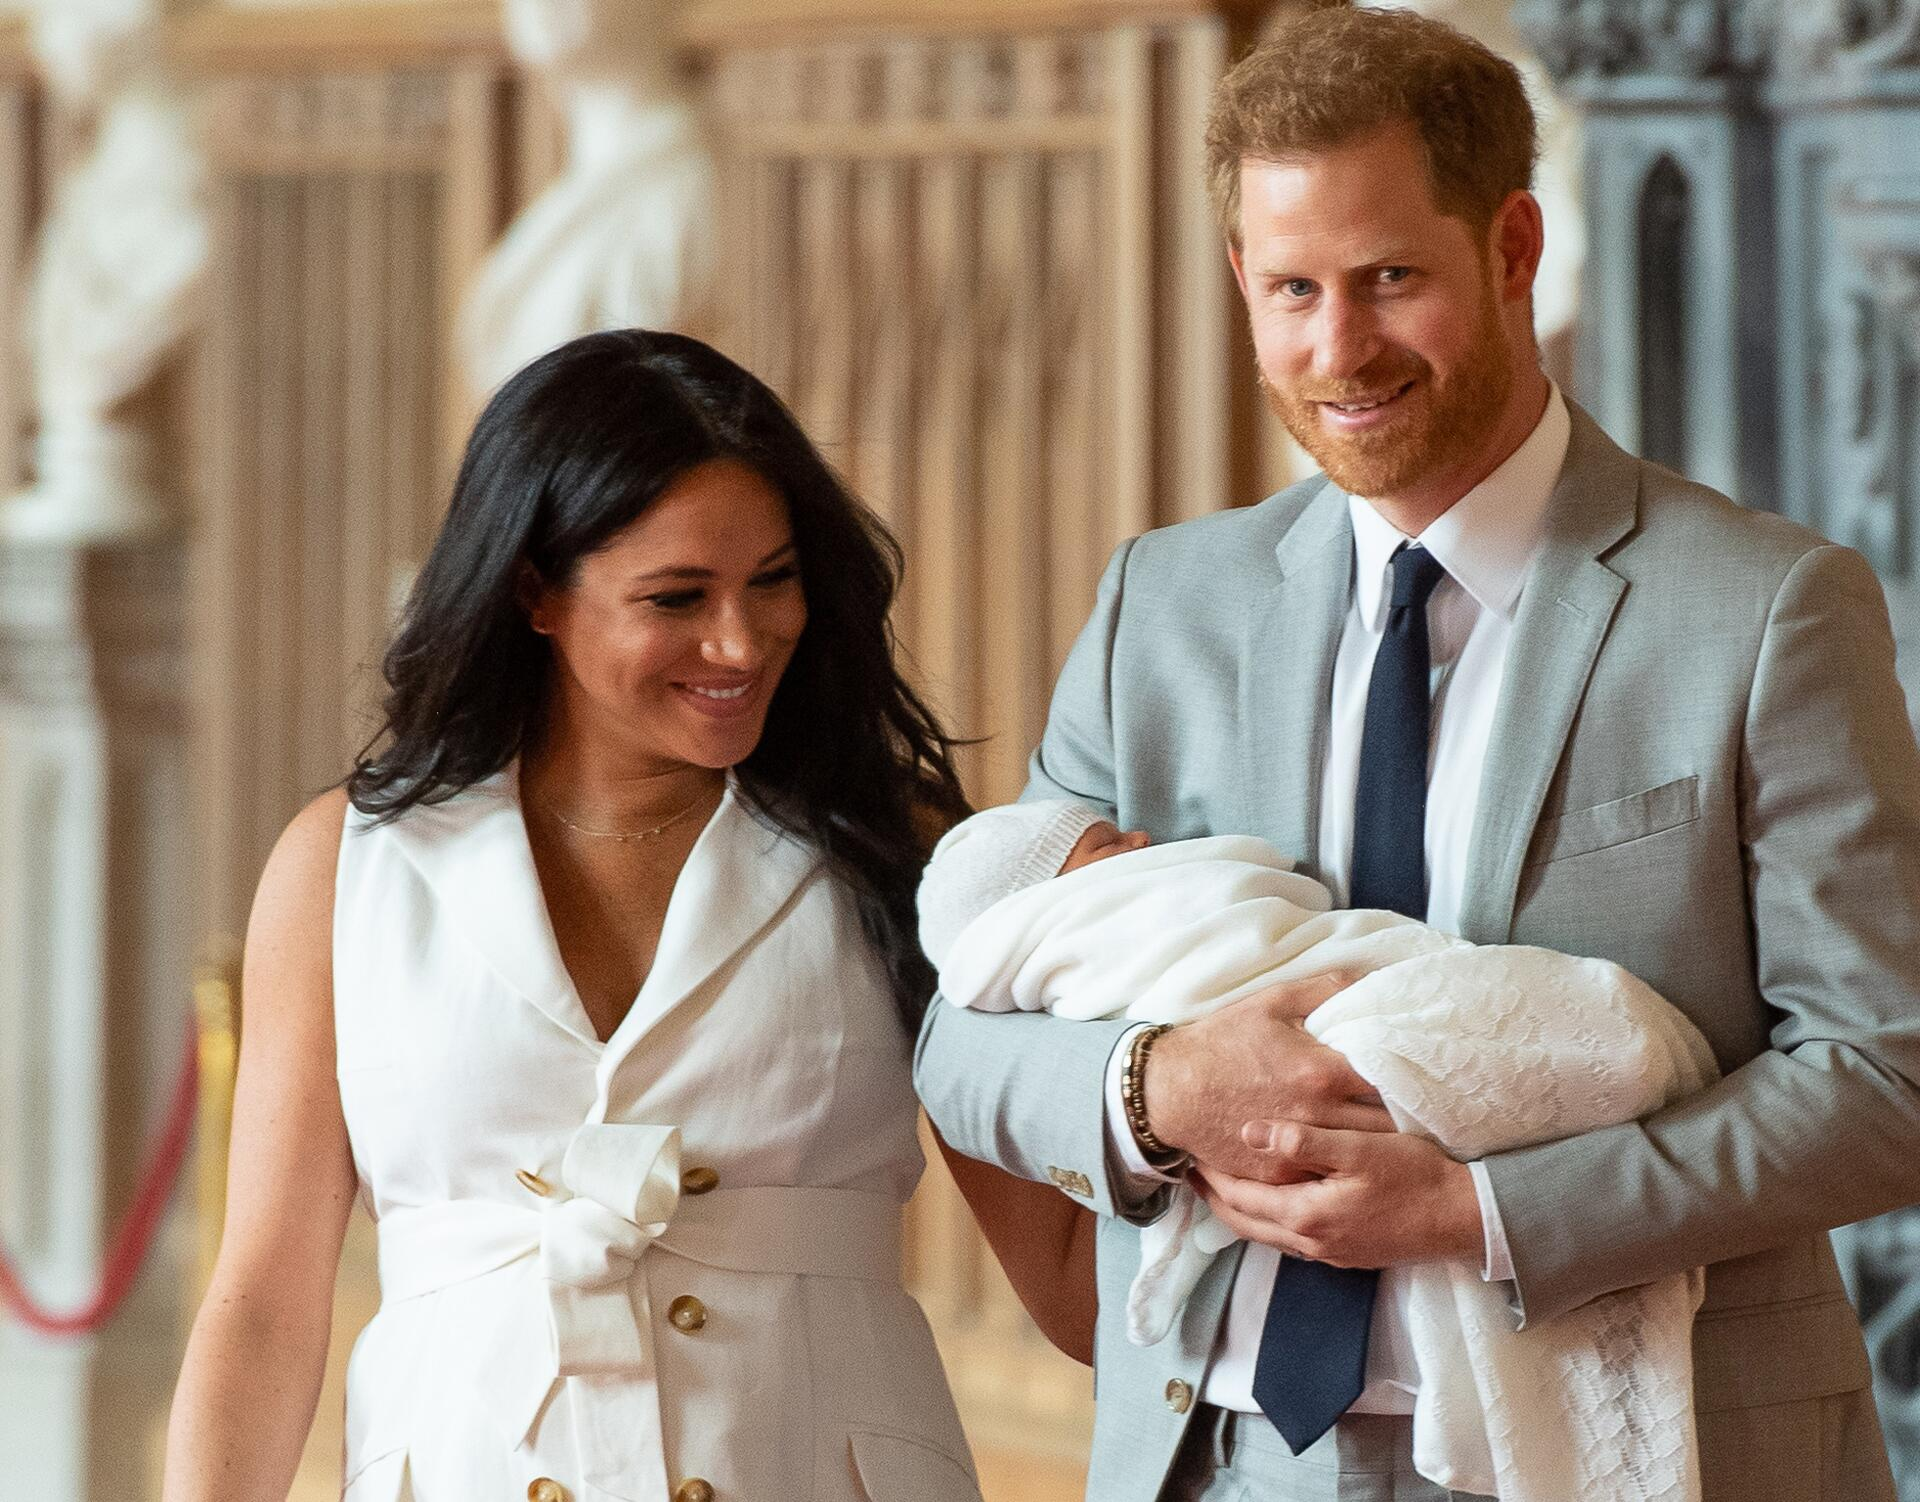 Bild zu «Baby Sussex» heißt Archie Harrison Mountbatten-Windsor